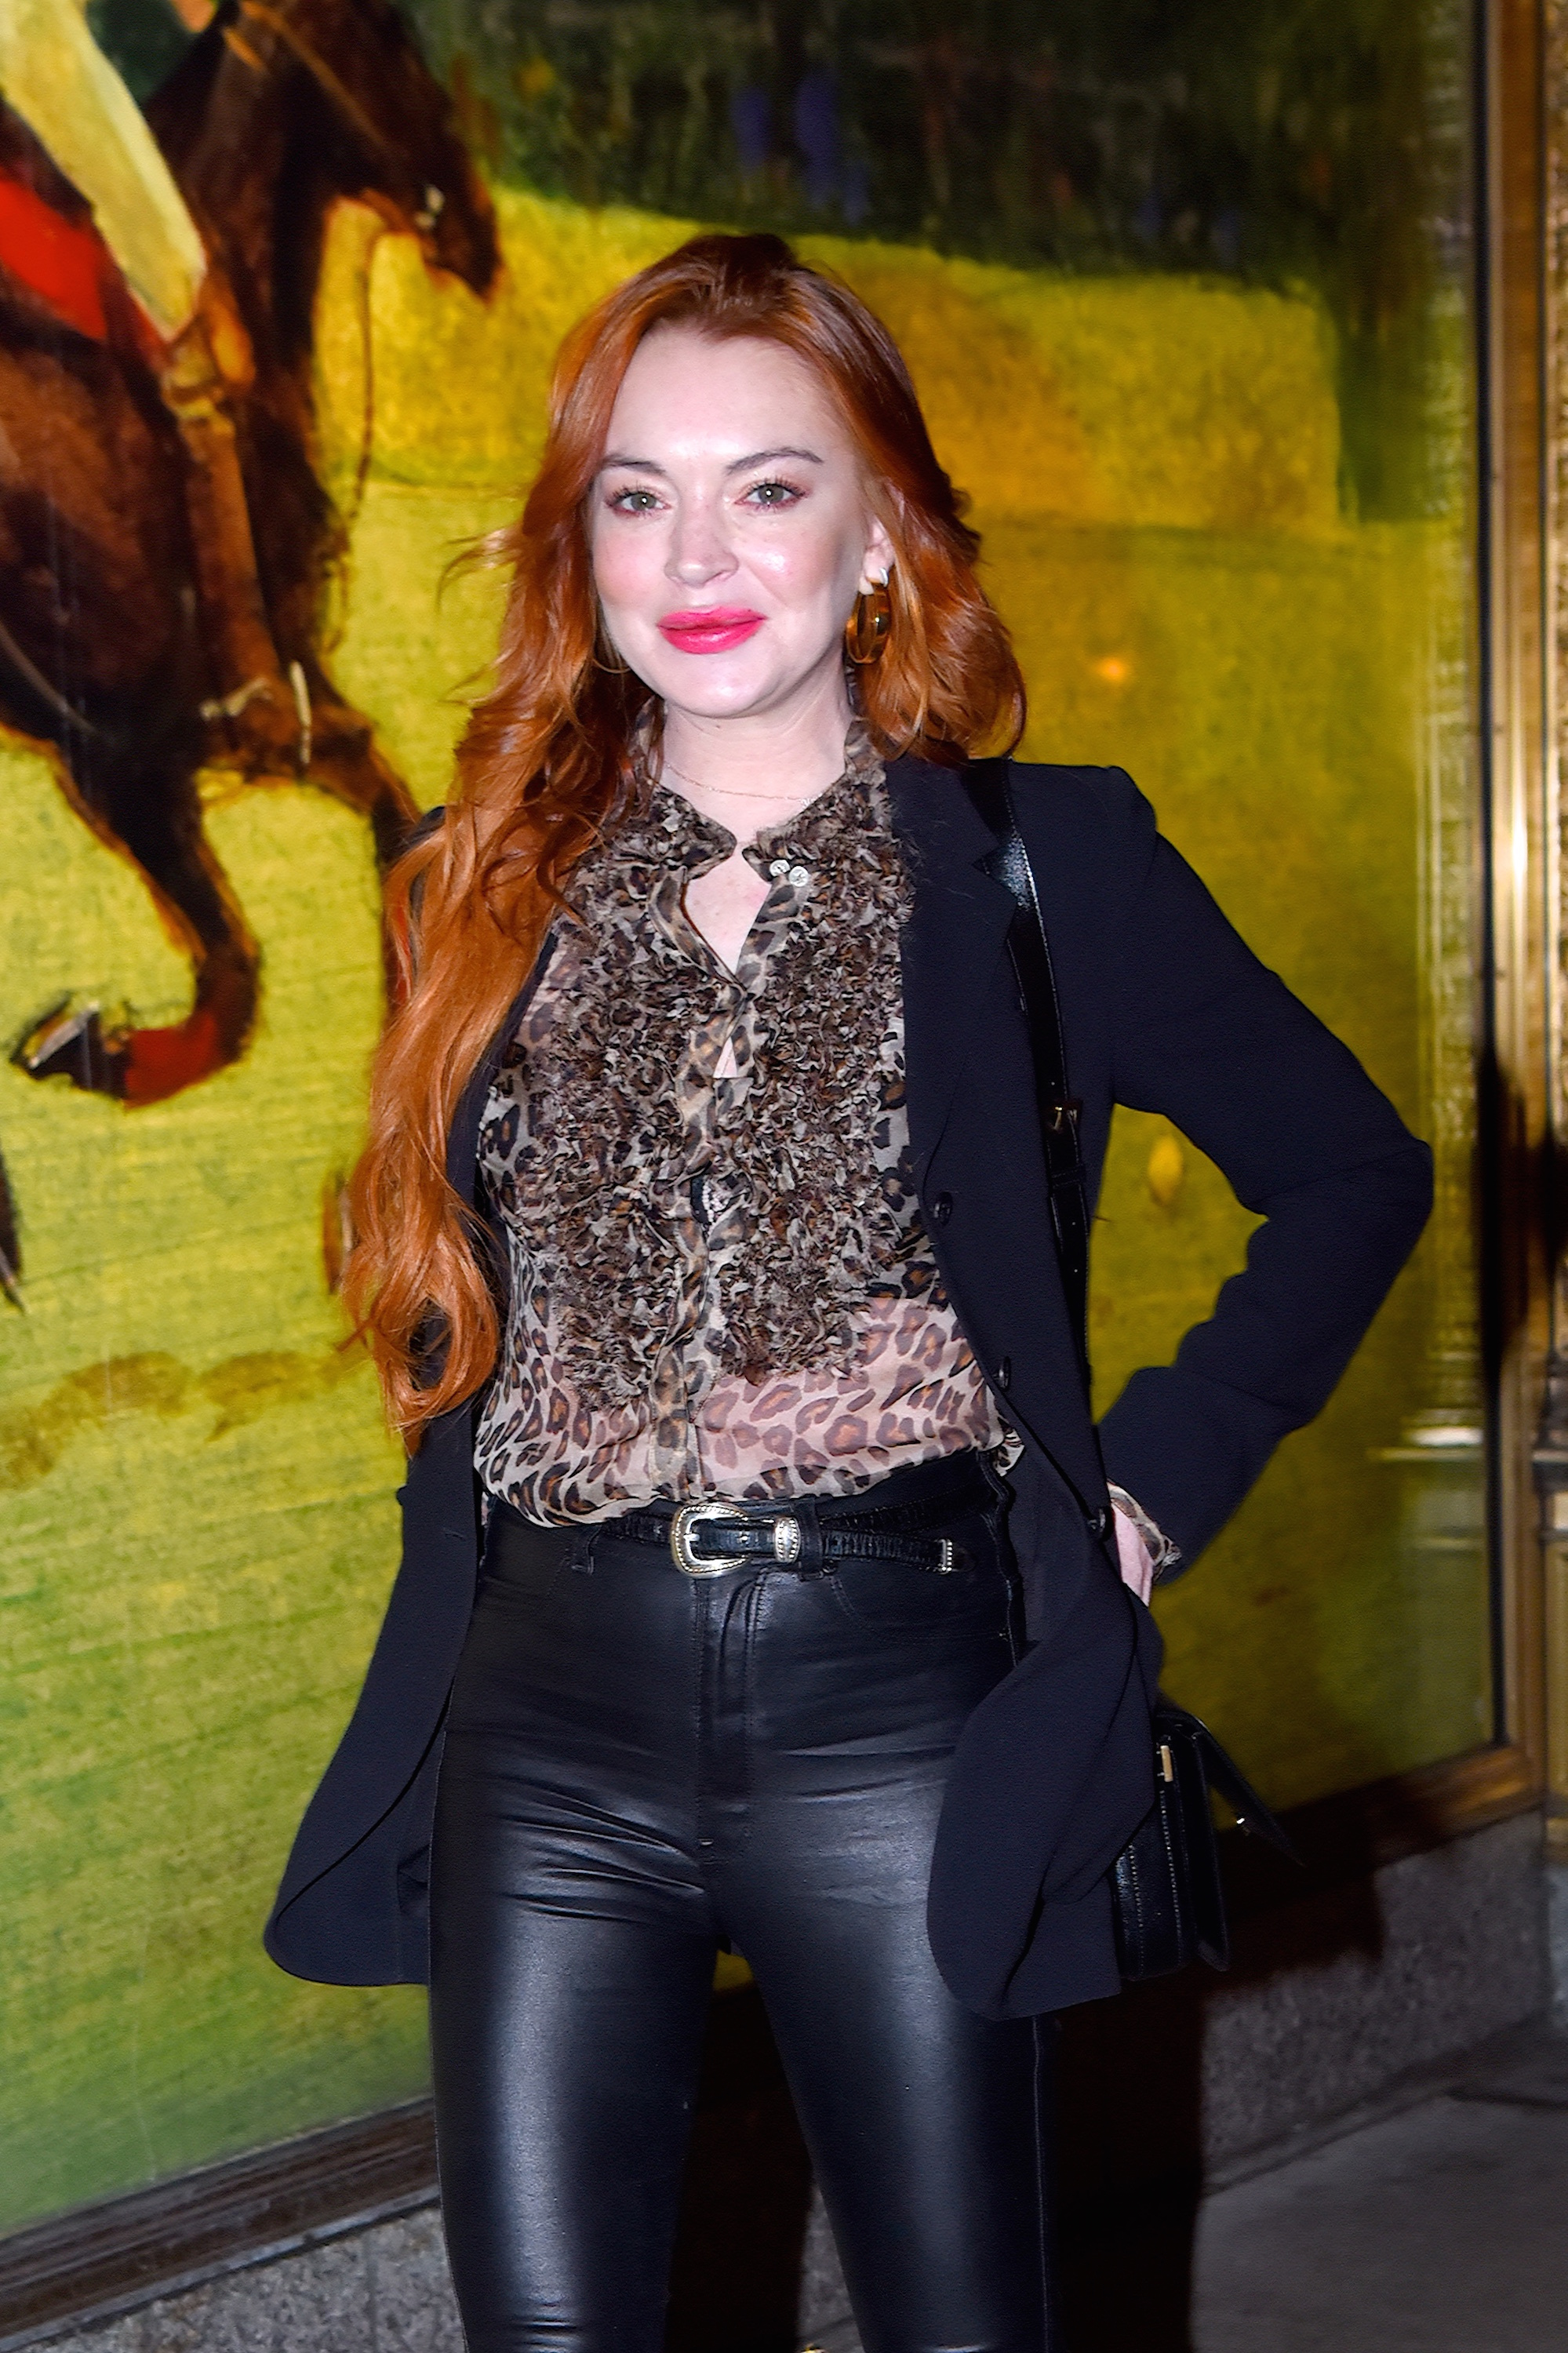 Is the World Ready for More Music from Lindsay Lohan?